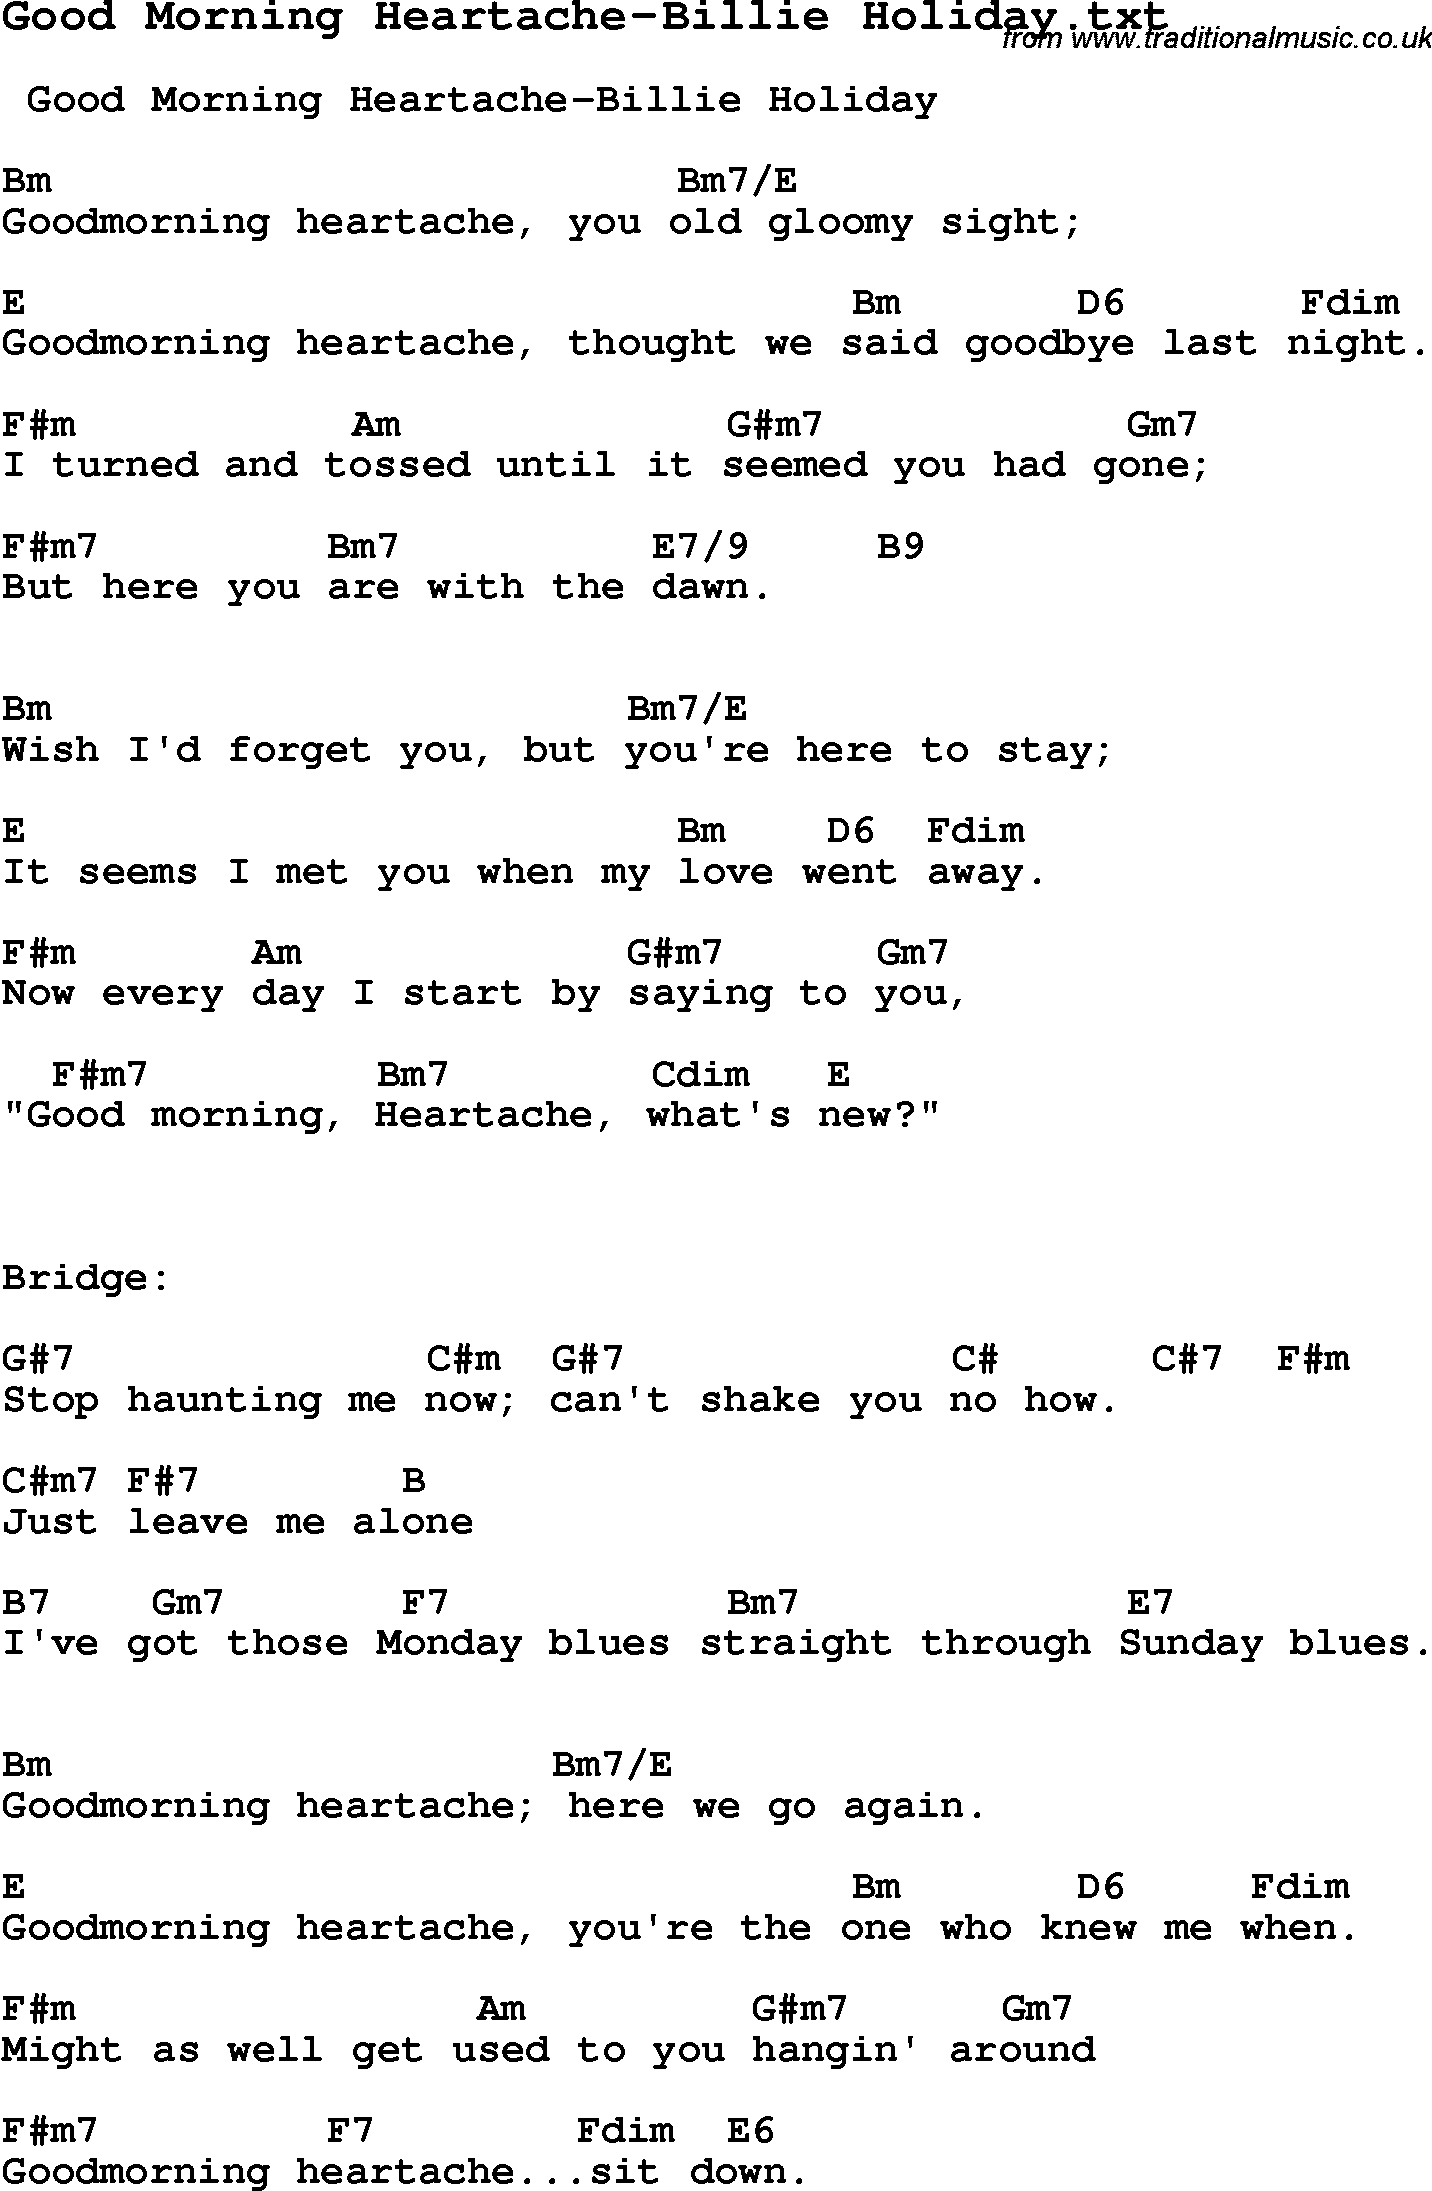 Sunday Morning Chords Jazz Song Good Morning Heartache Billie Holiday With Chords Tabs